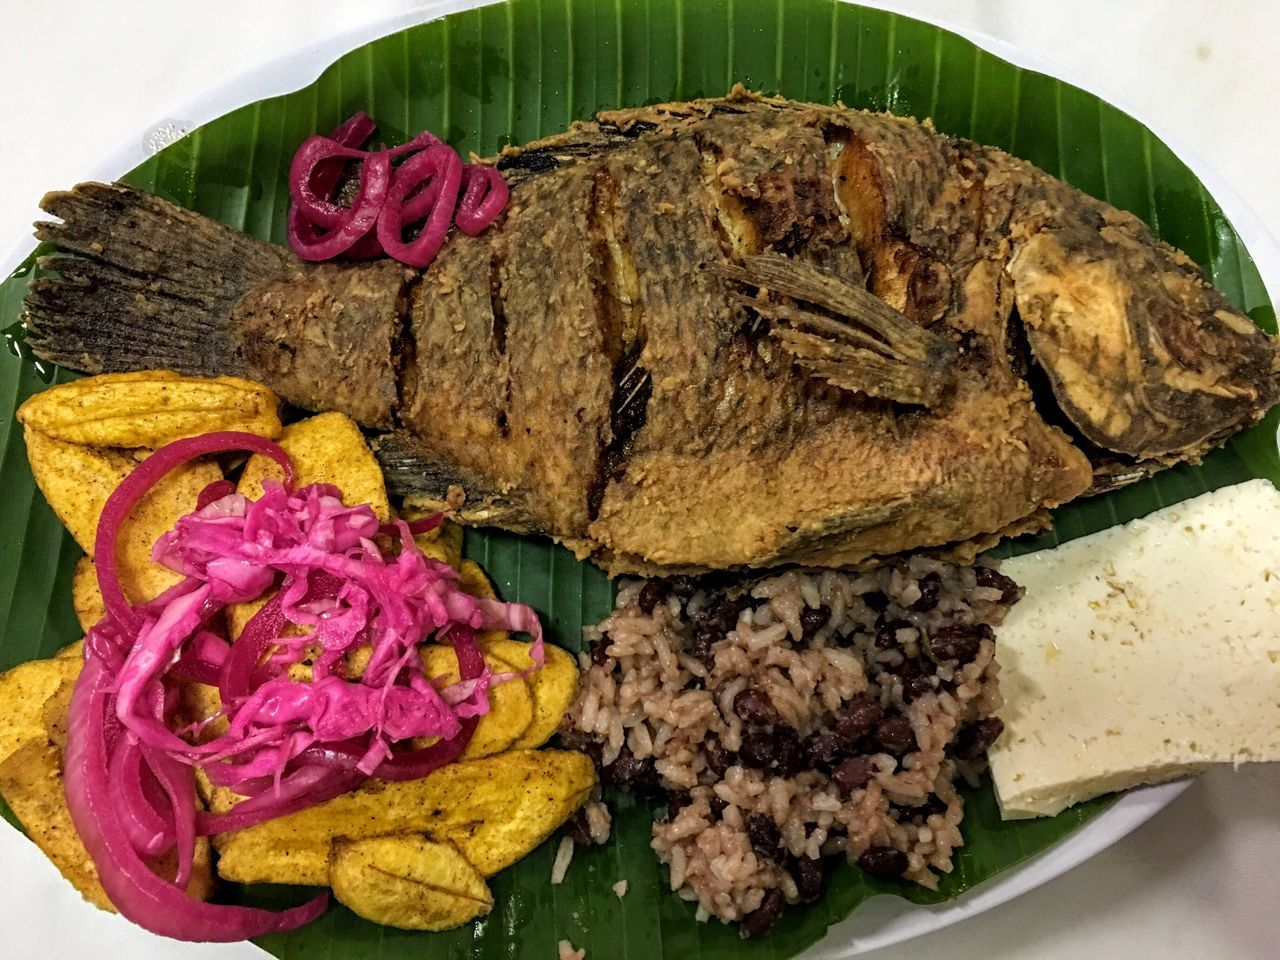 Flower No People Food Freshness Indoors  Banana Leaf Close-up Ready-to-eat Day Visual Feast Honduras Fried Fish Delicious